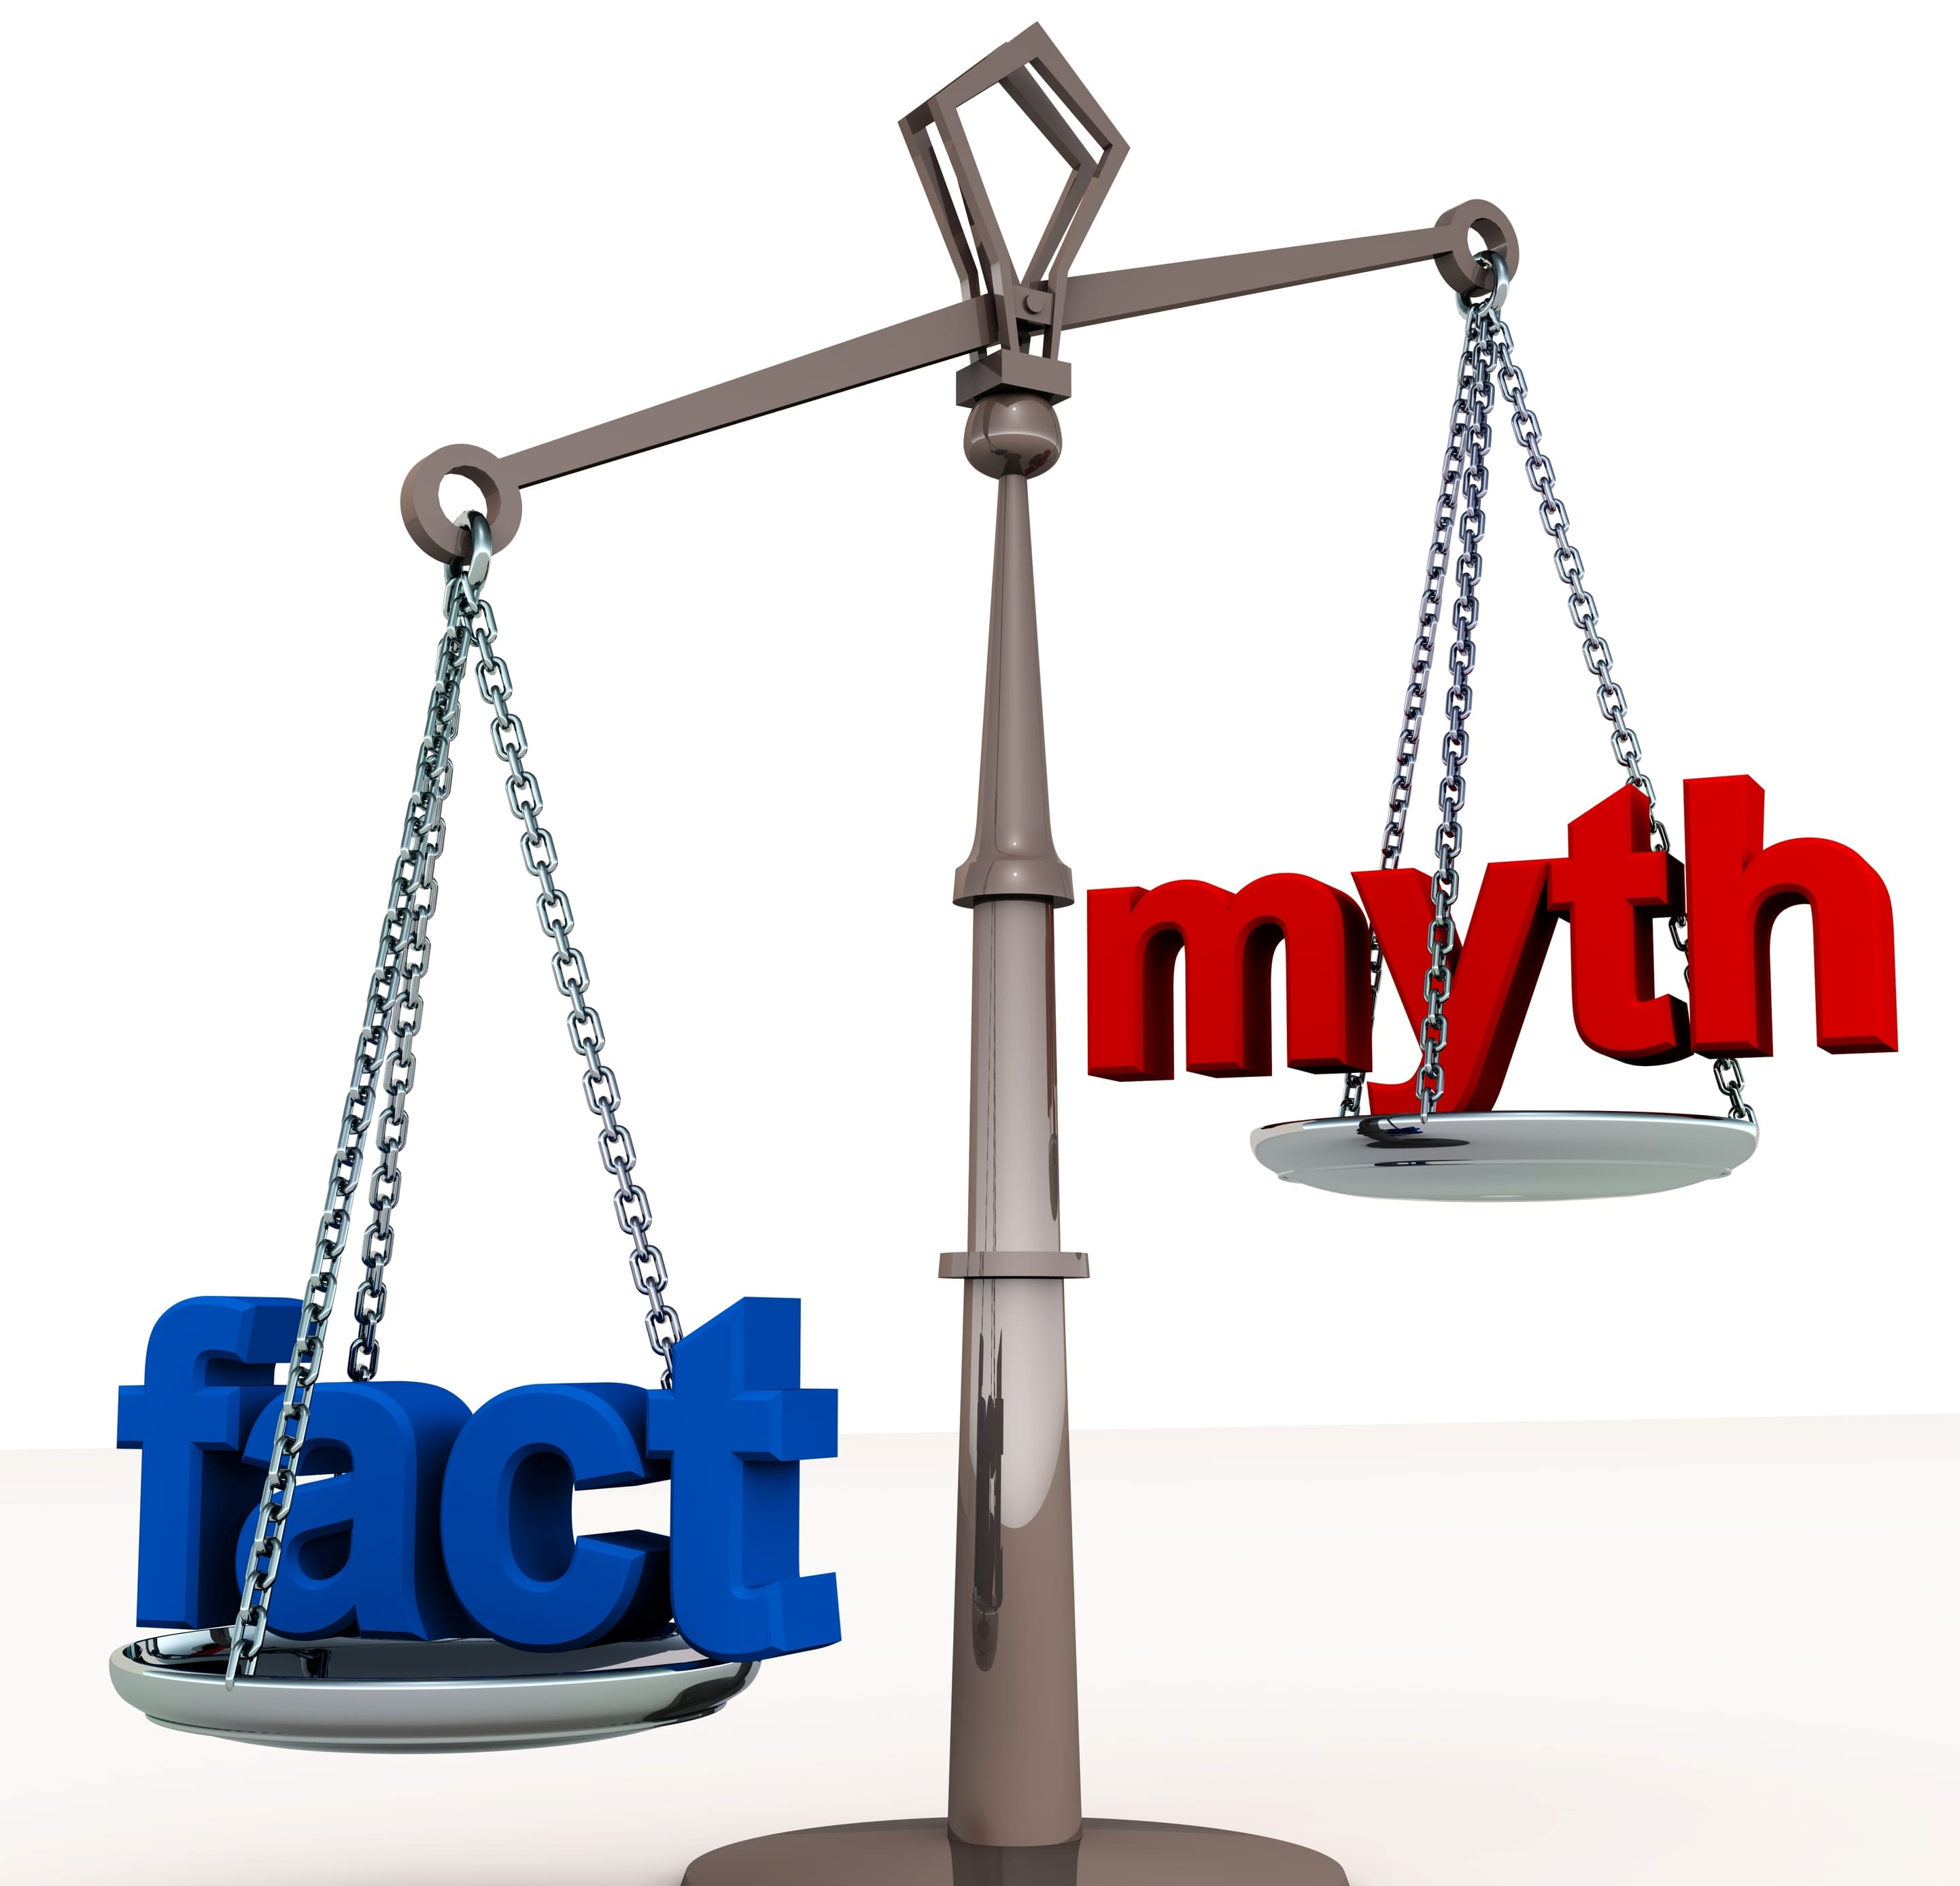 Payroll myths and facts